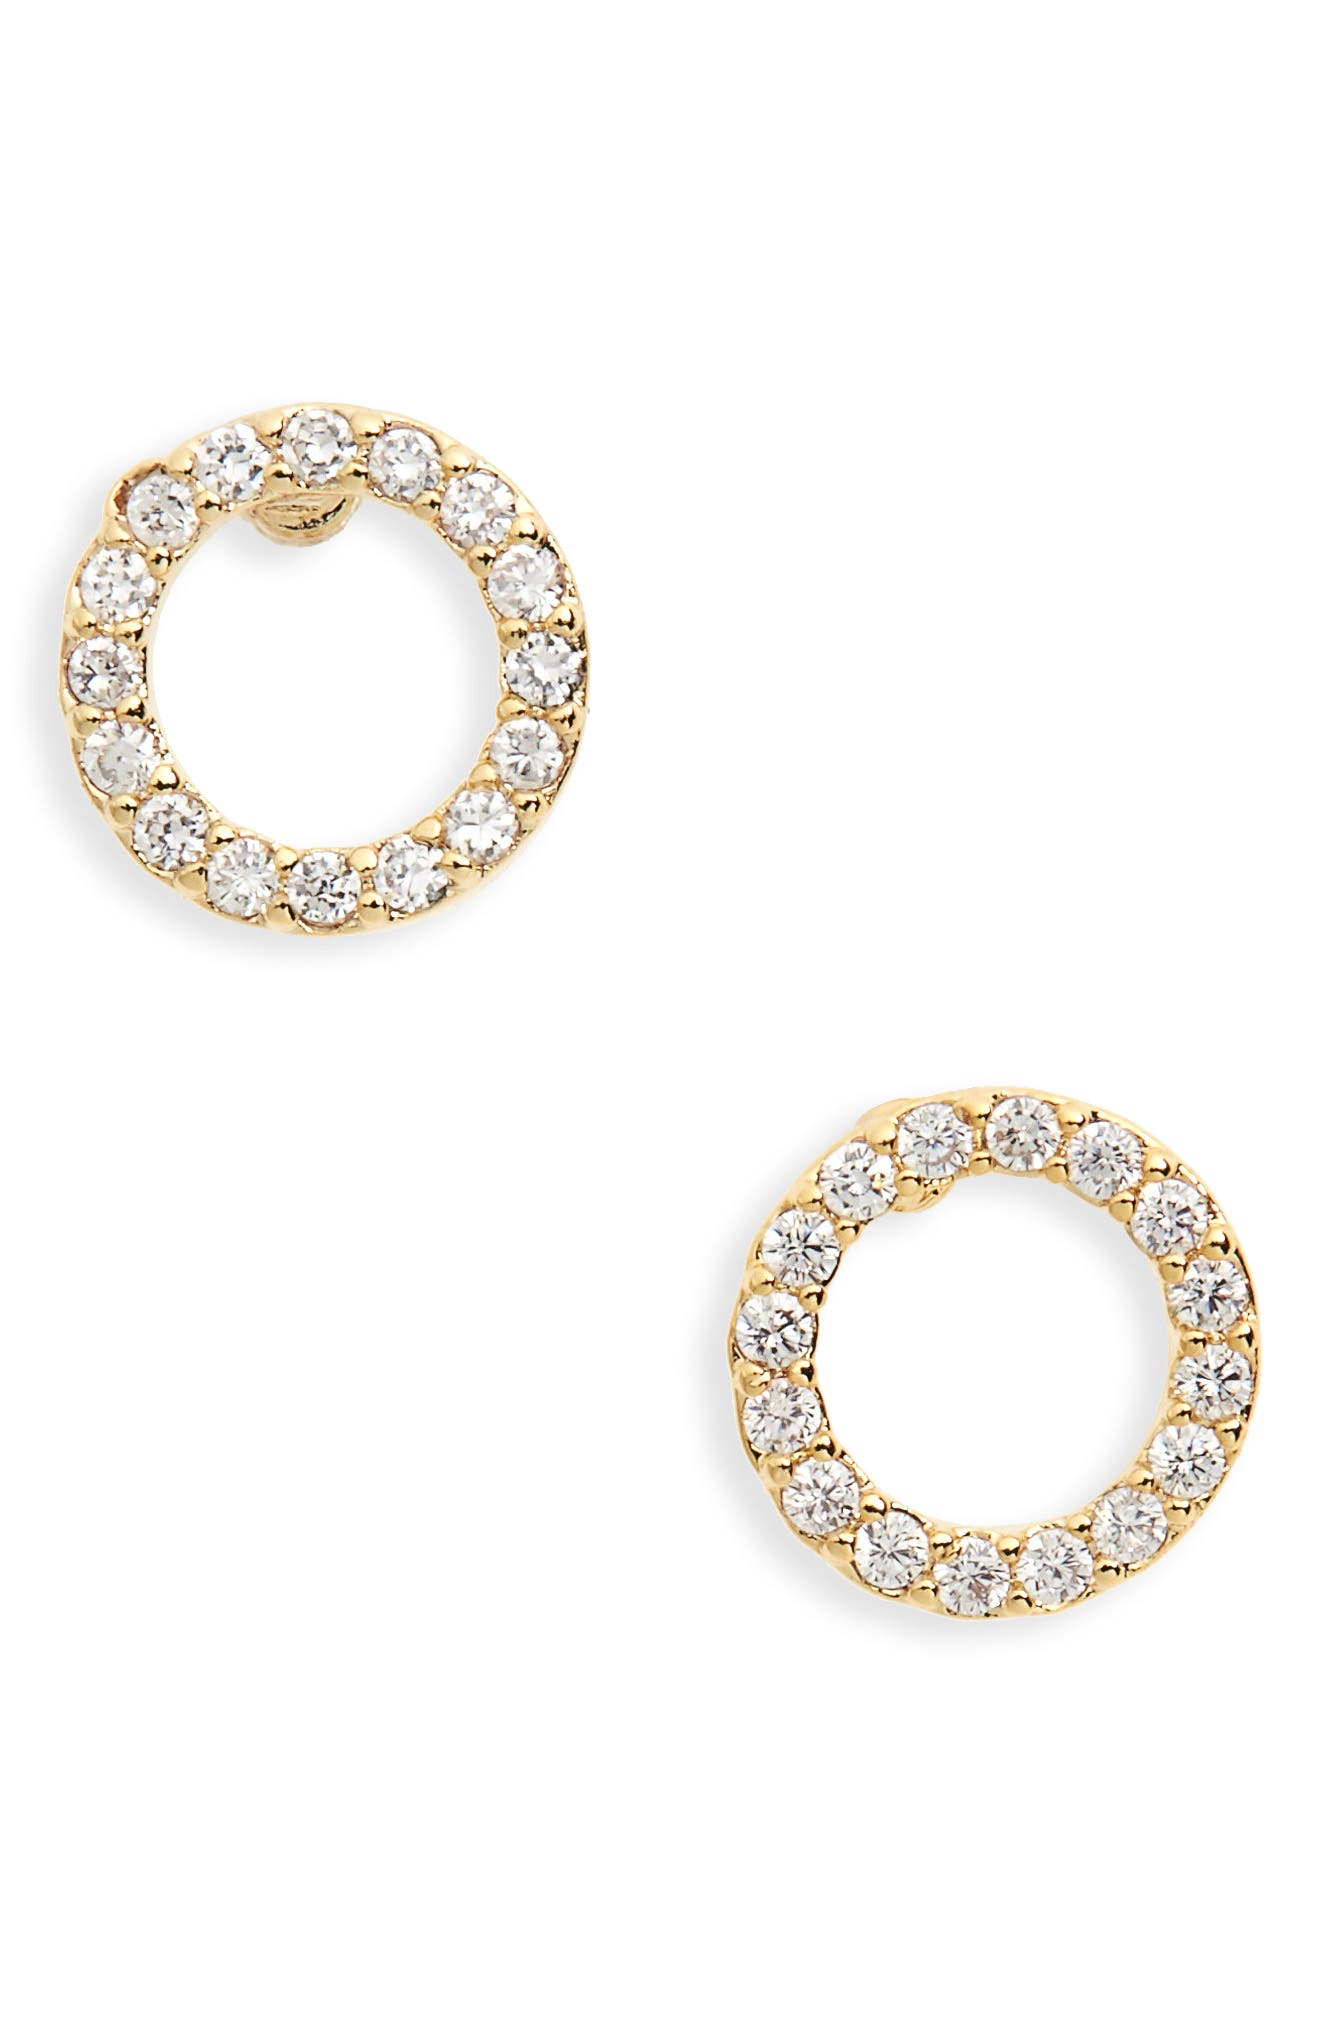 Cubic Zirconia Circle Earrings,                             Main thumbnail 1, color,                             GOLD